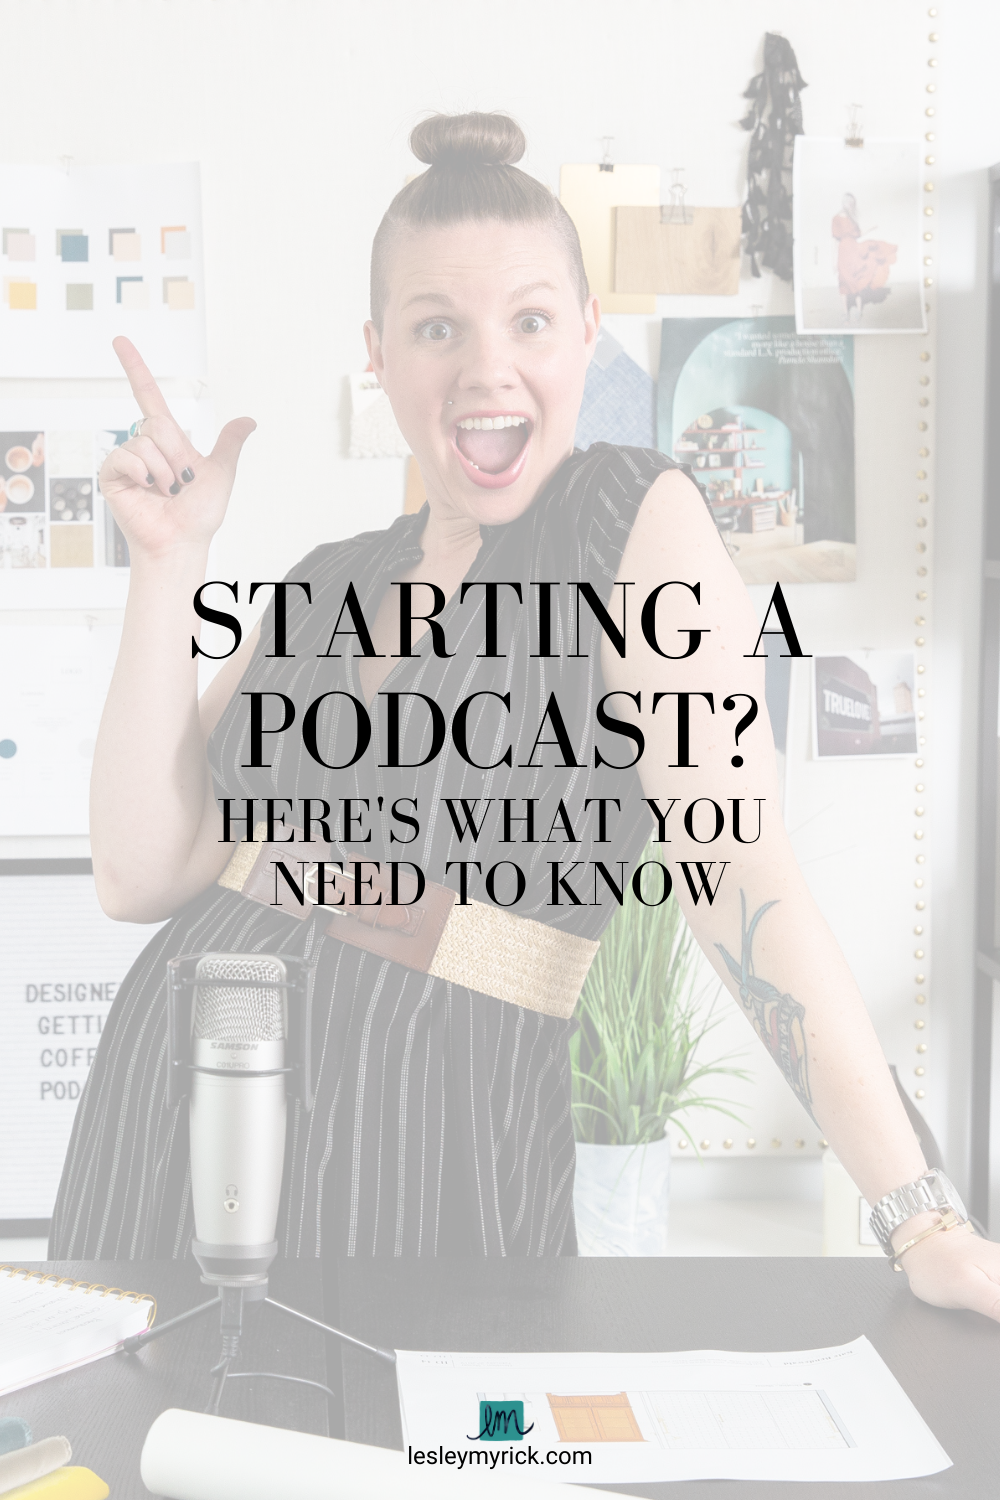 Starting a podcast? Here's what you need to know.